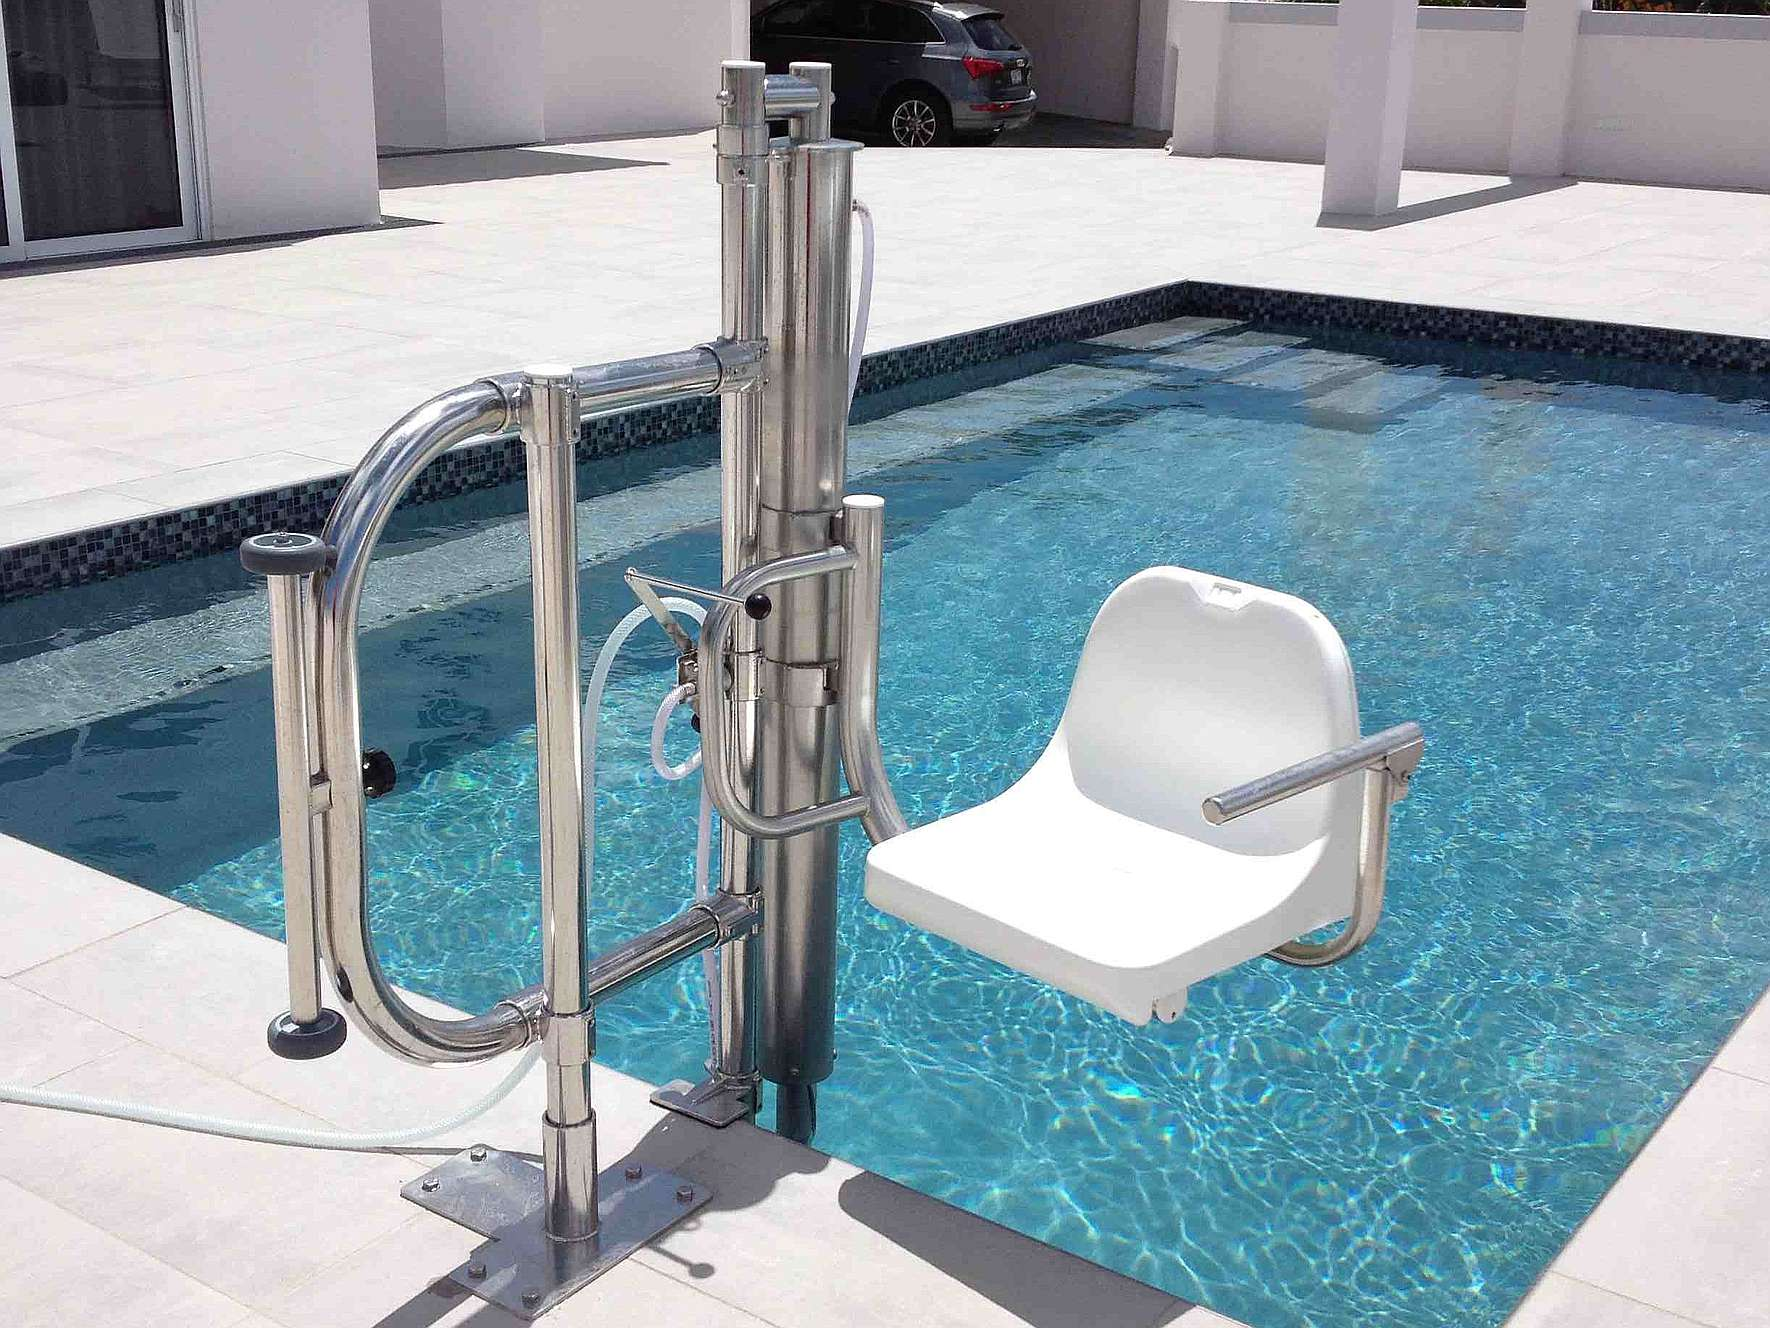 Poollift stainless steel